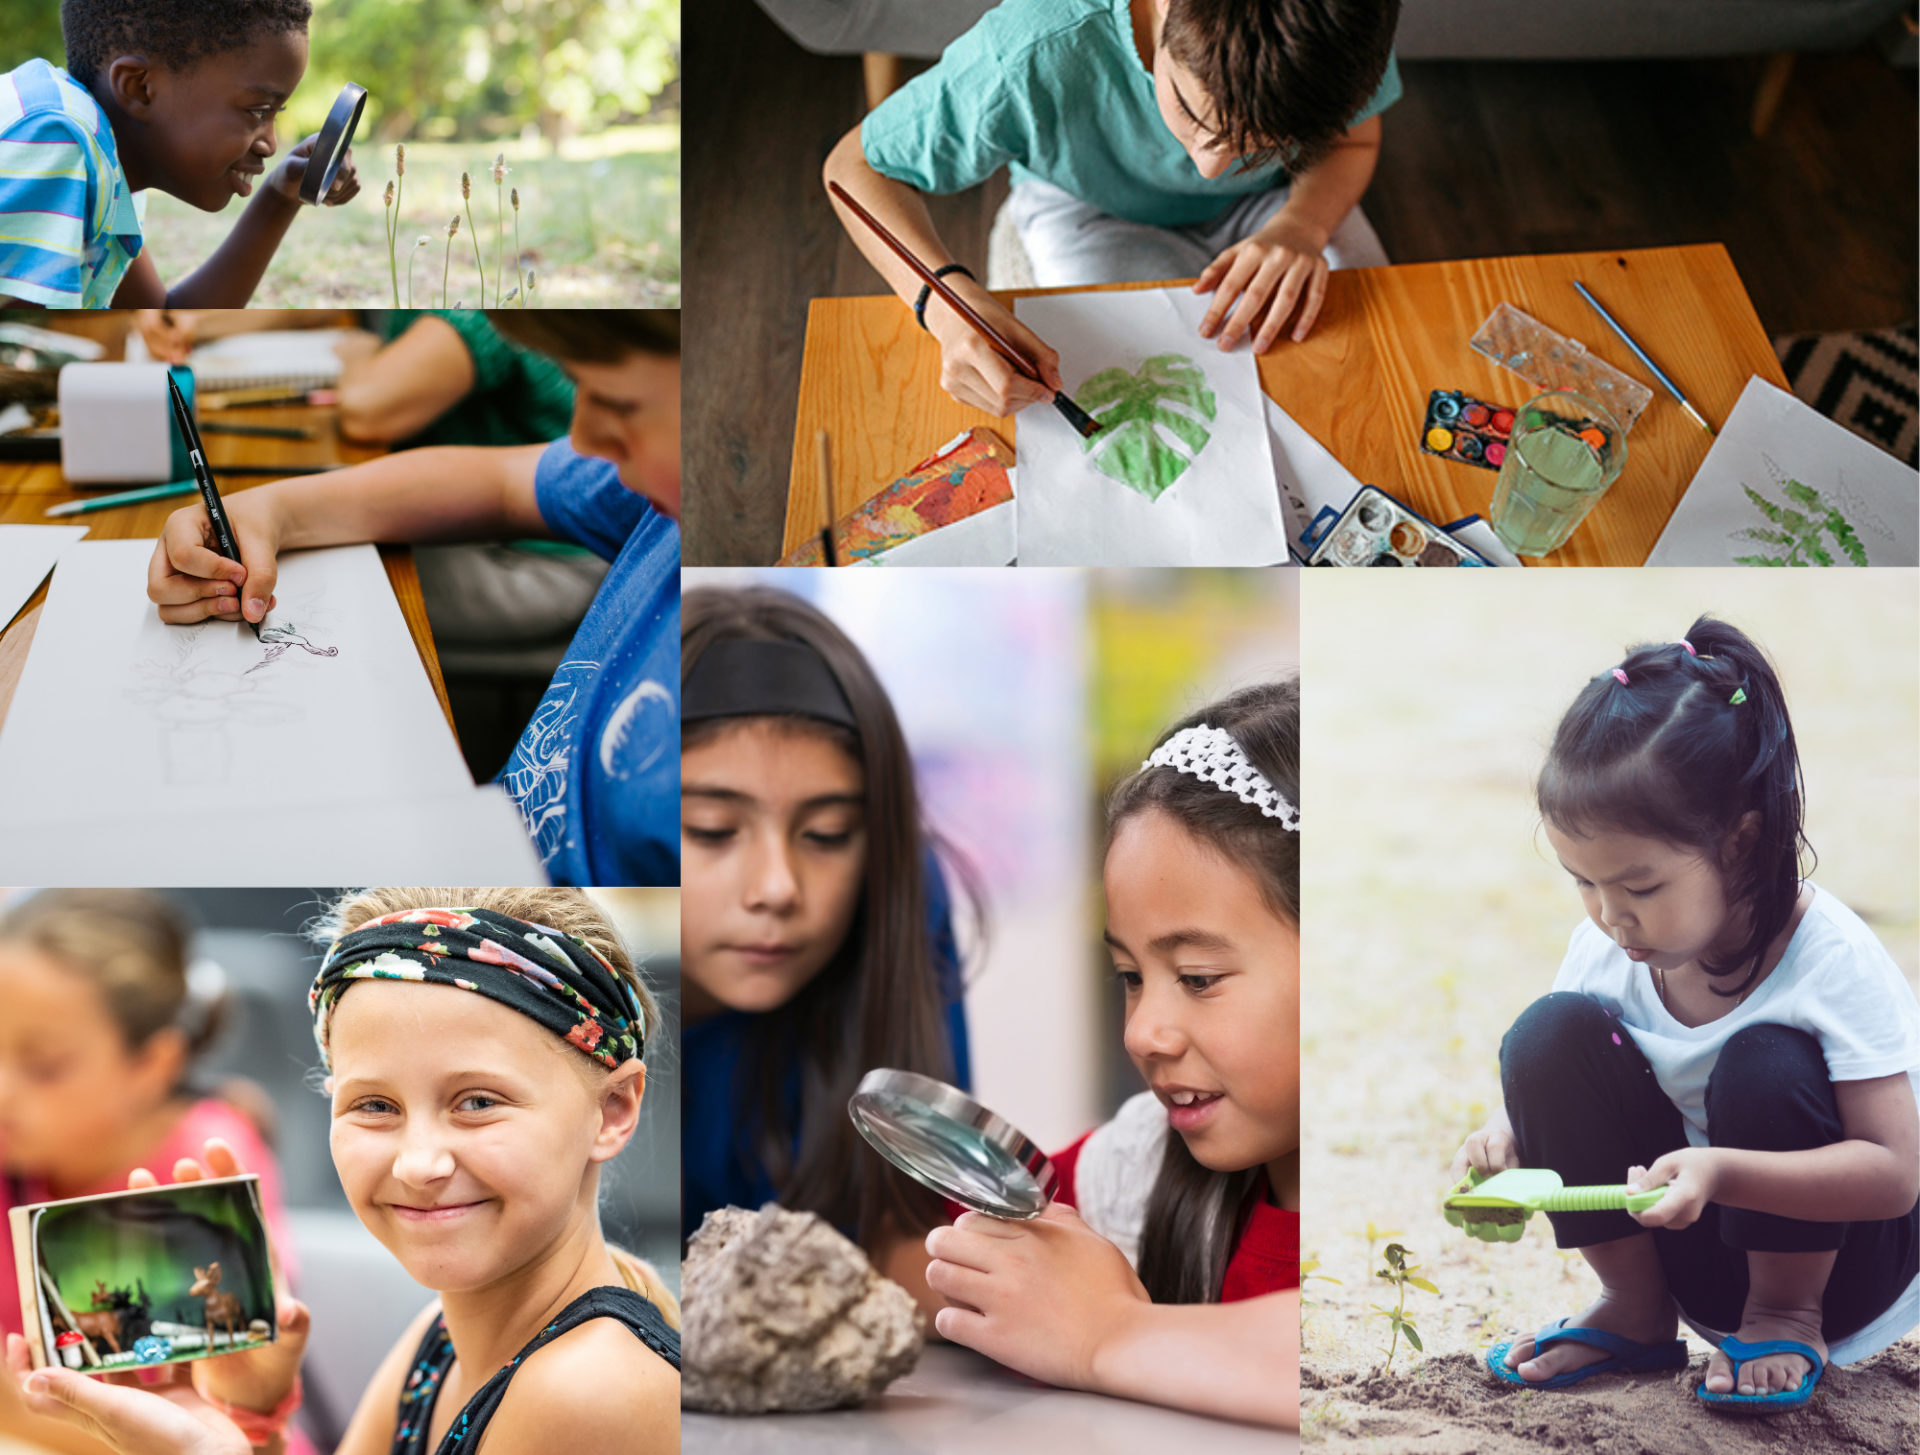 Collage of children drawing, using magnify glass, playing in soil